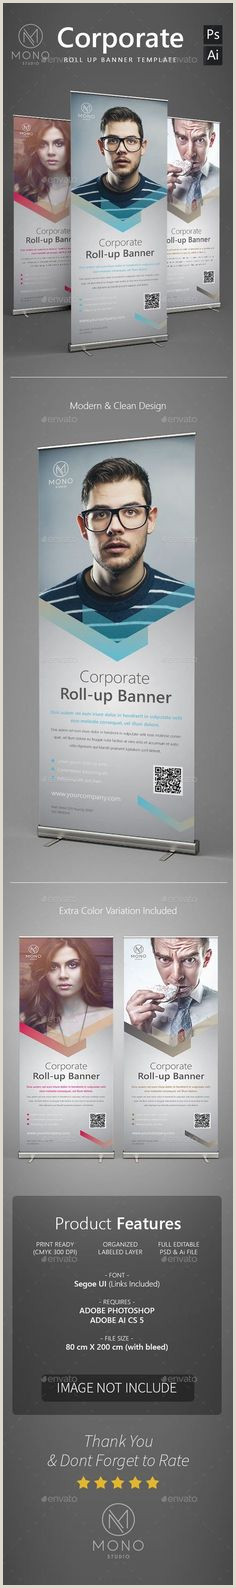 Pop Up Banner Examples Best Of Conference Banners